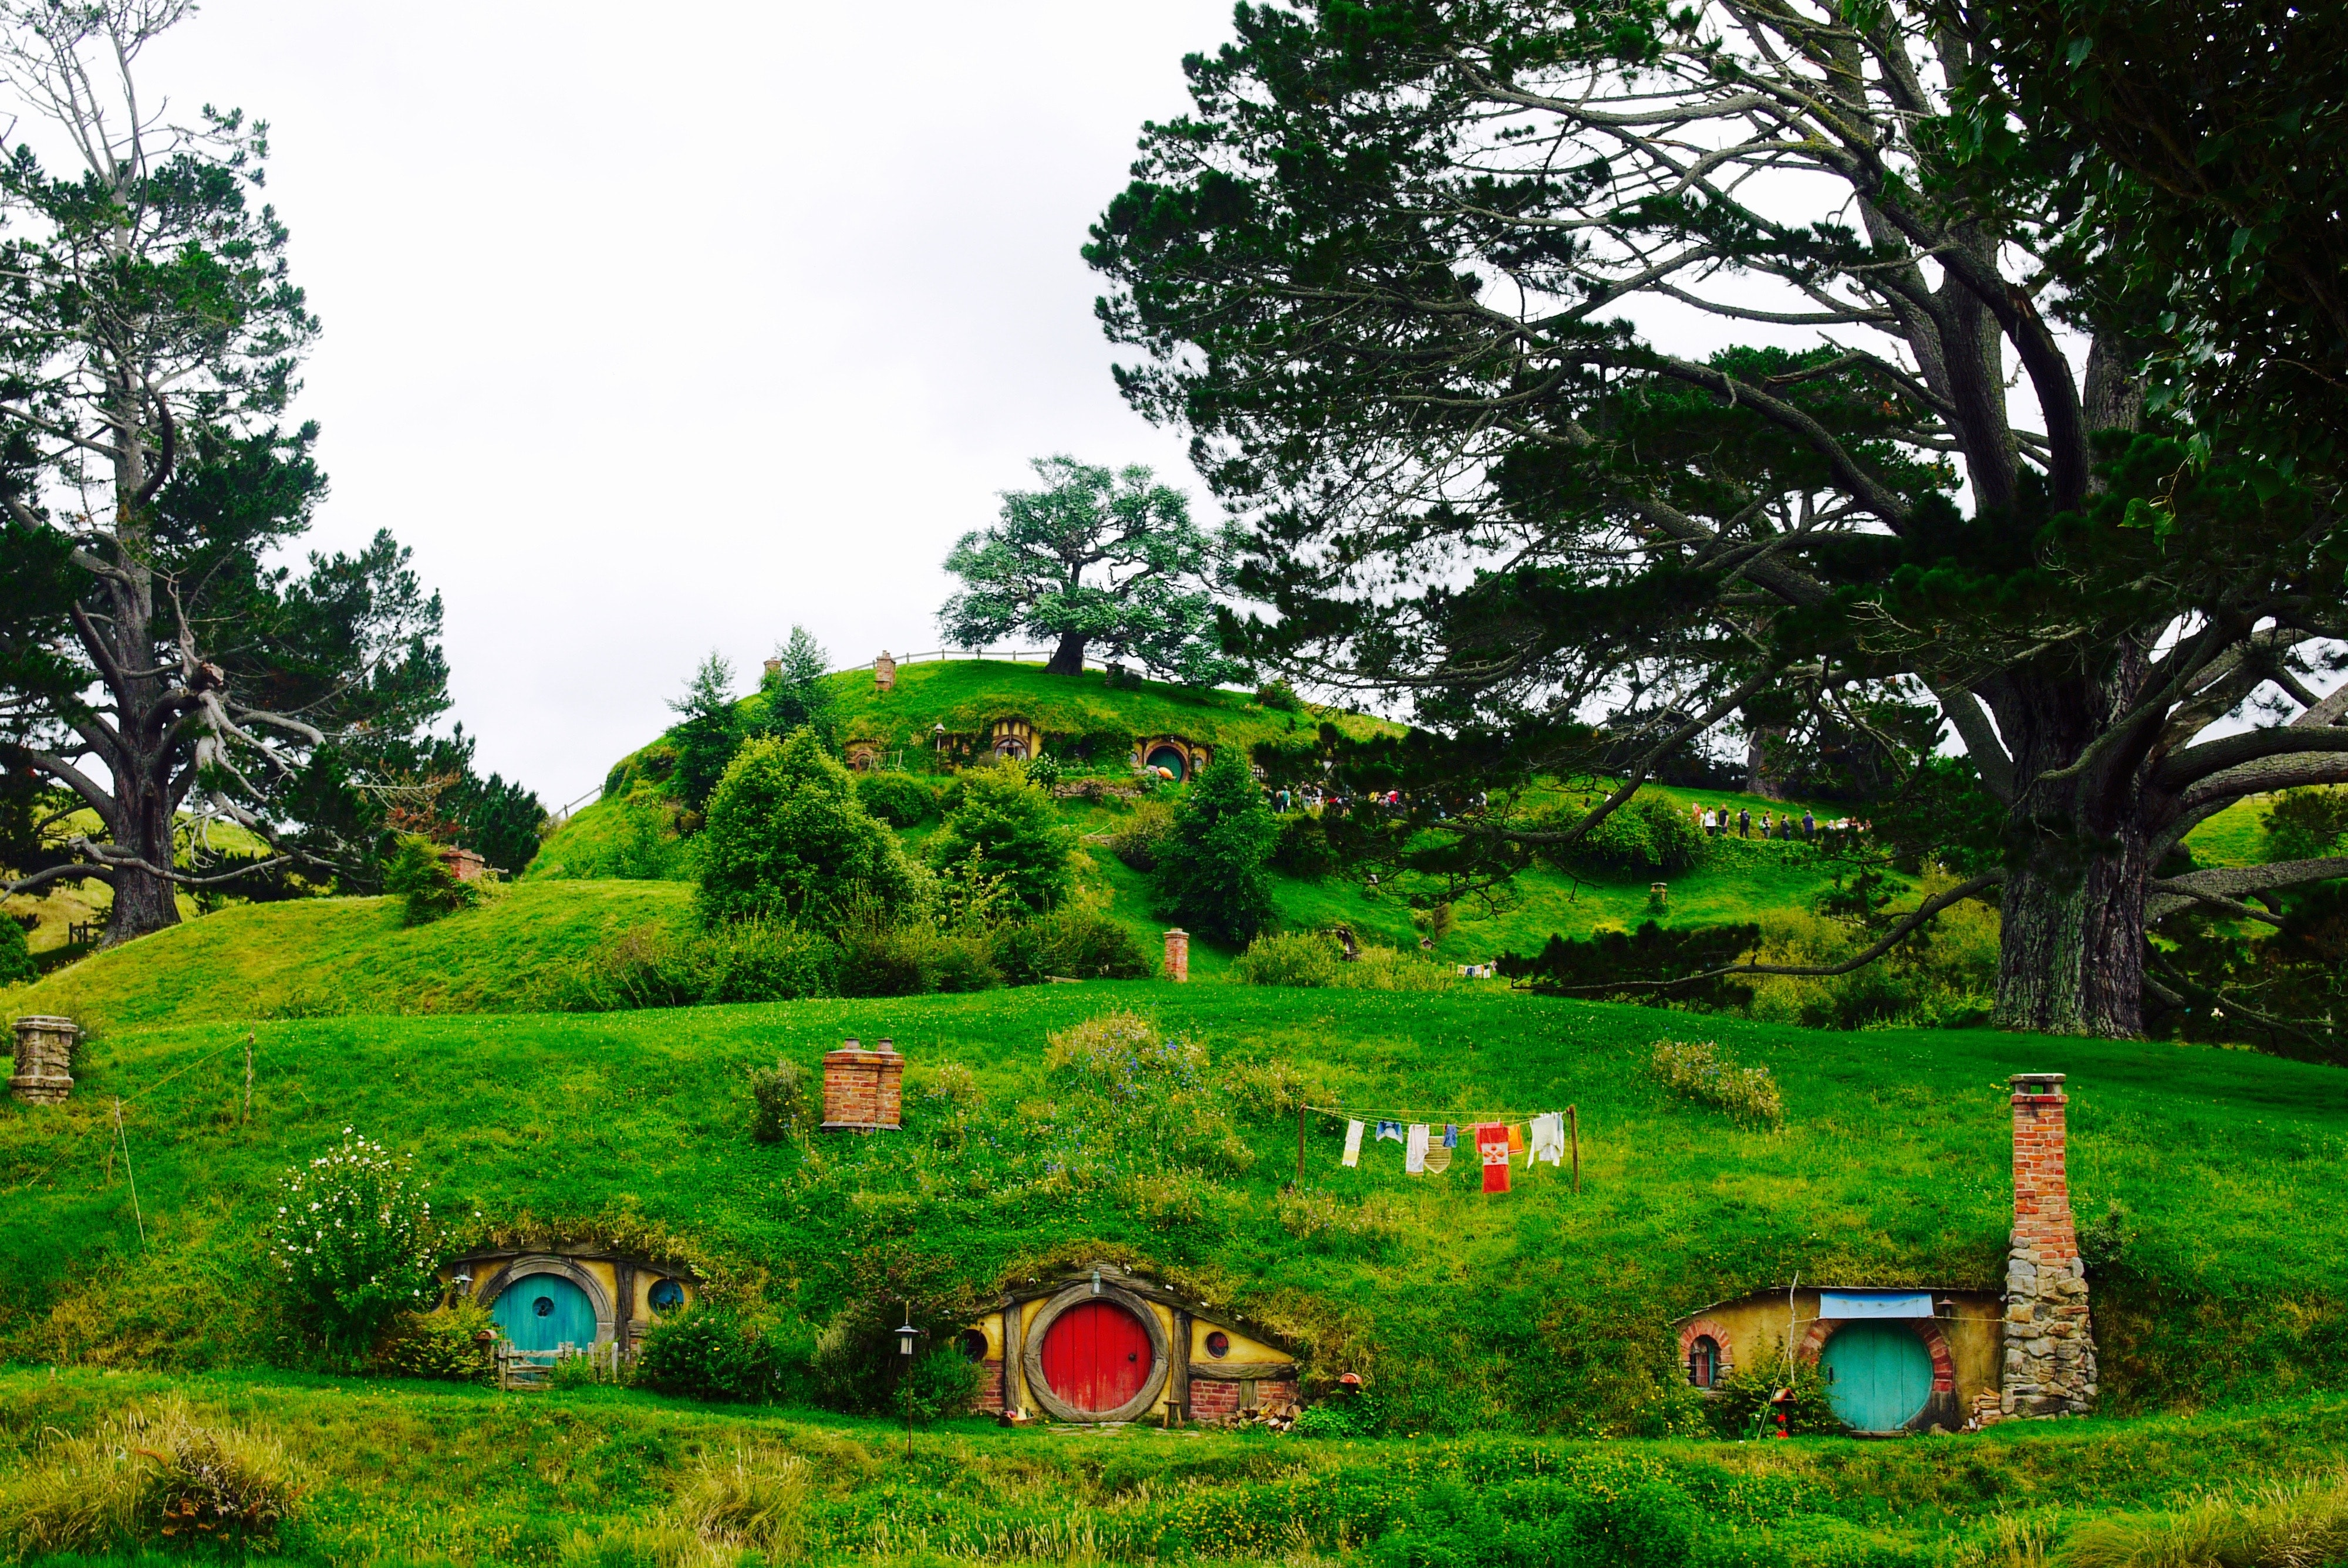 The inescapably enchanting Hobbiton